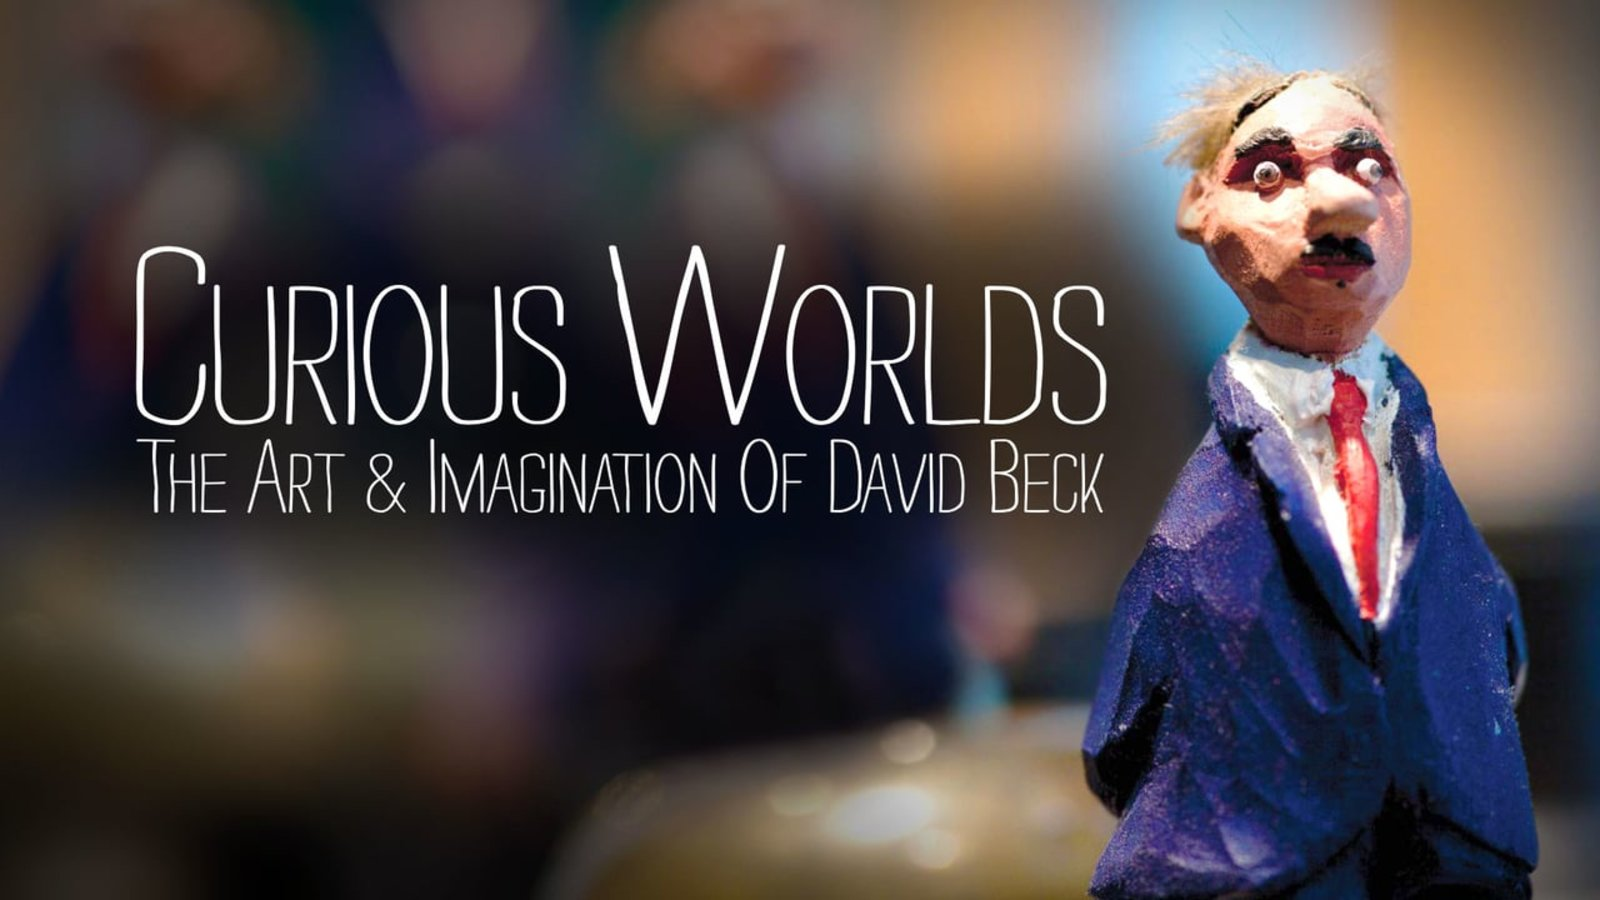 Curious Worlds - The Art & Imagination of David Beck